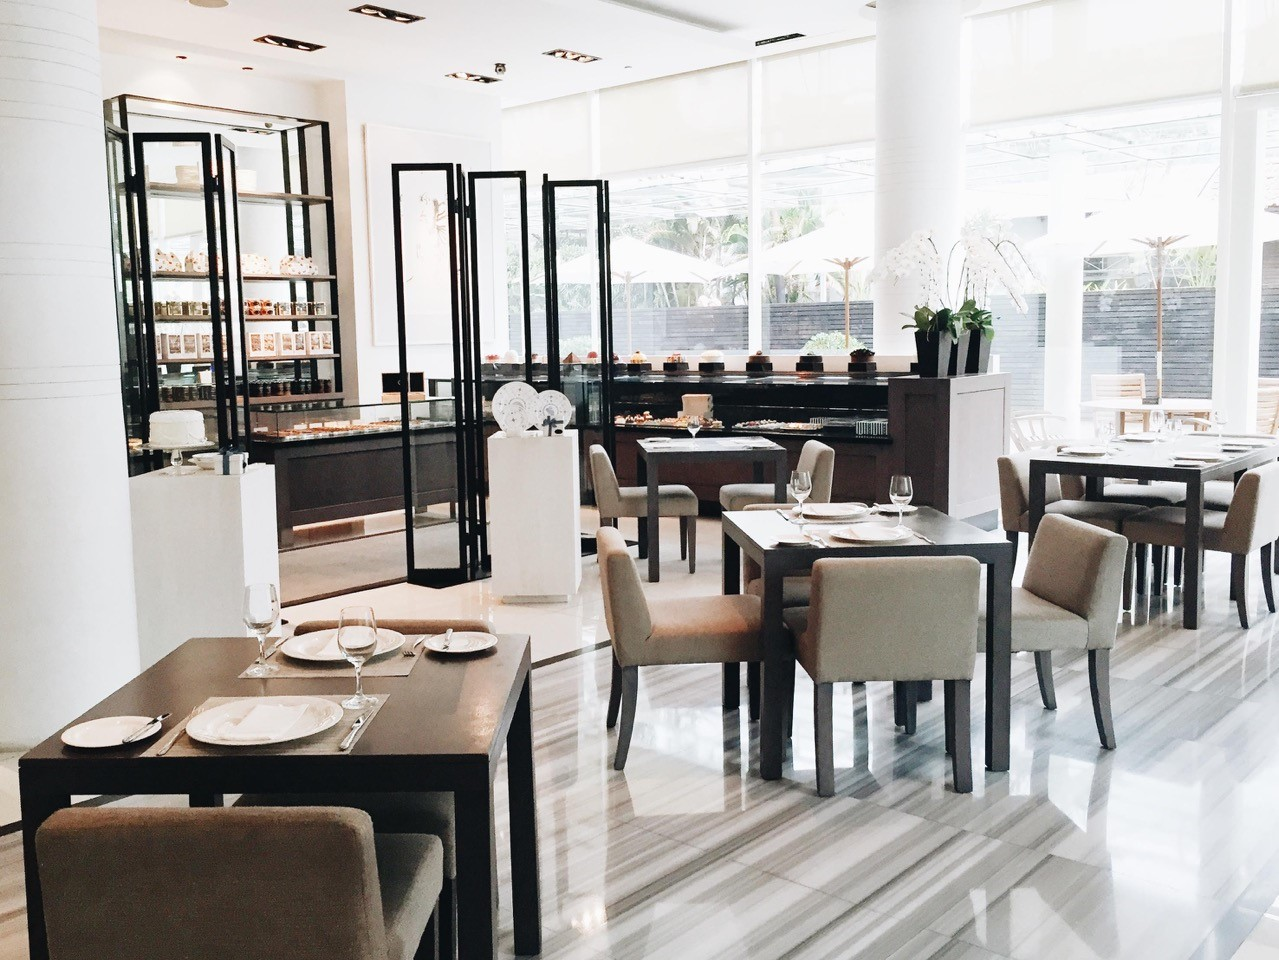 Lunch-deals-venuerific-blog-huize-van-wely-kemang-interior